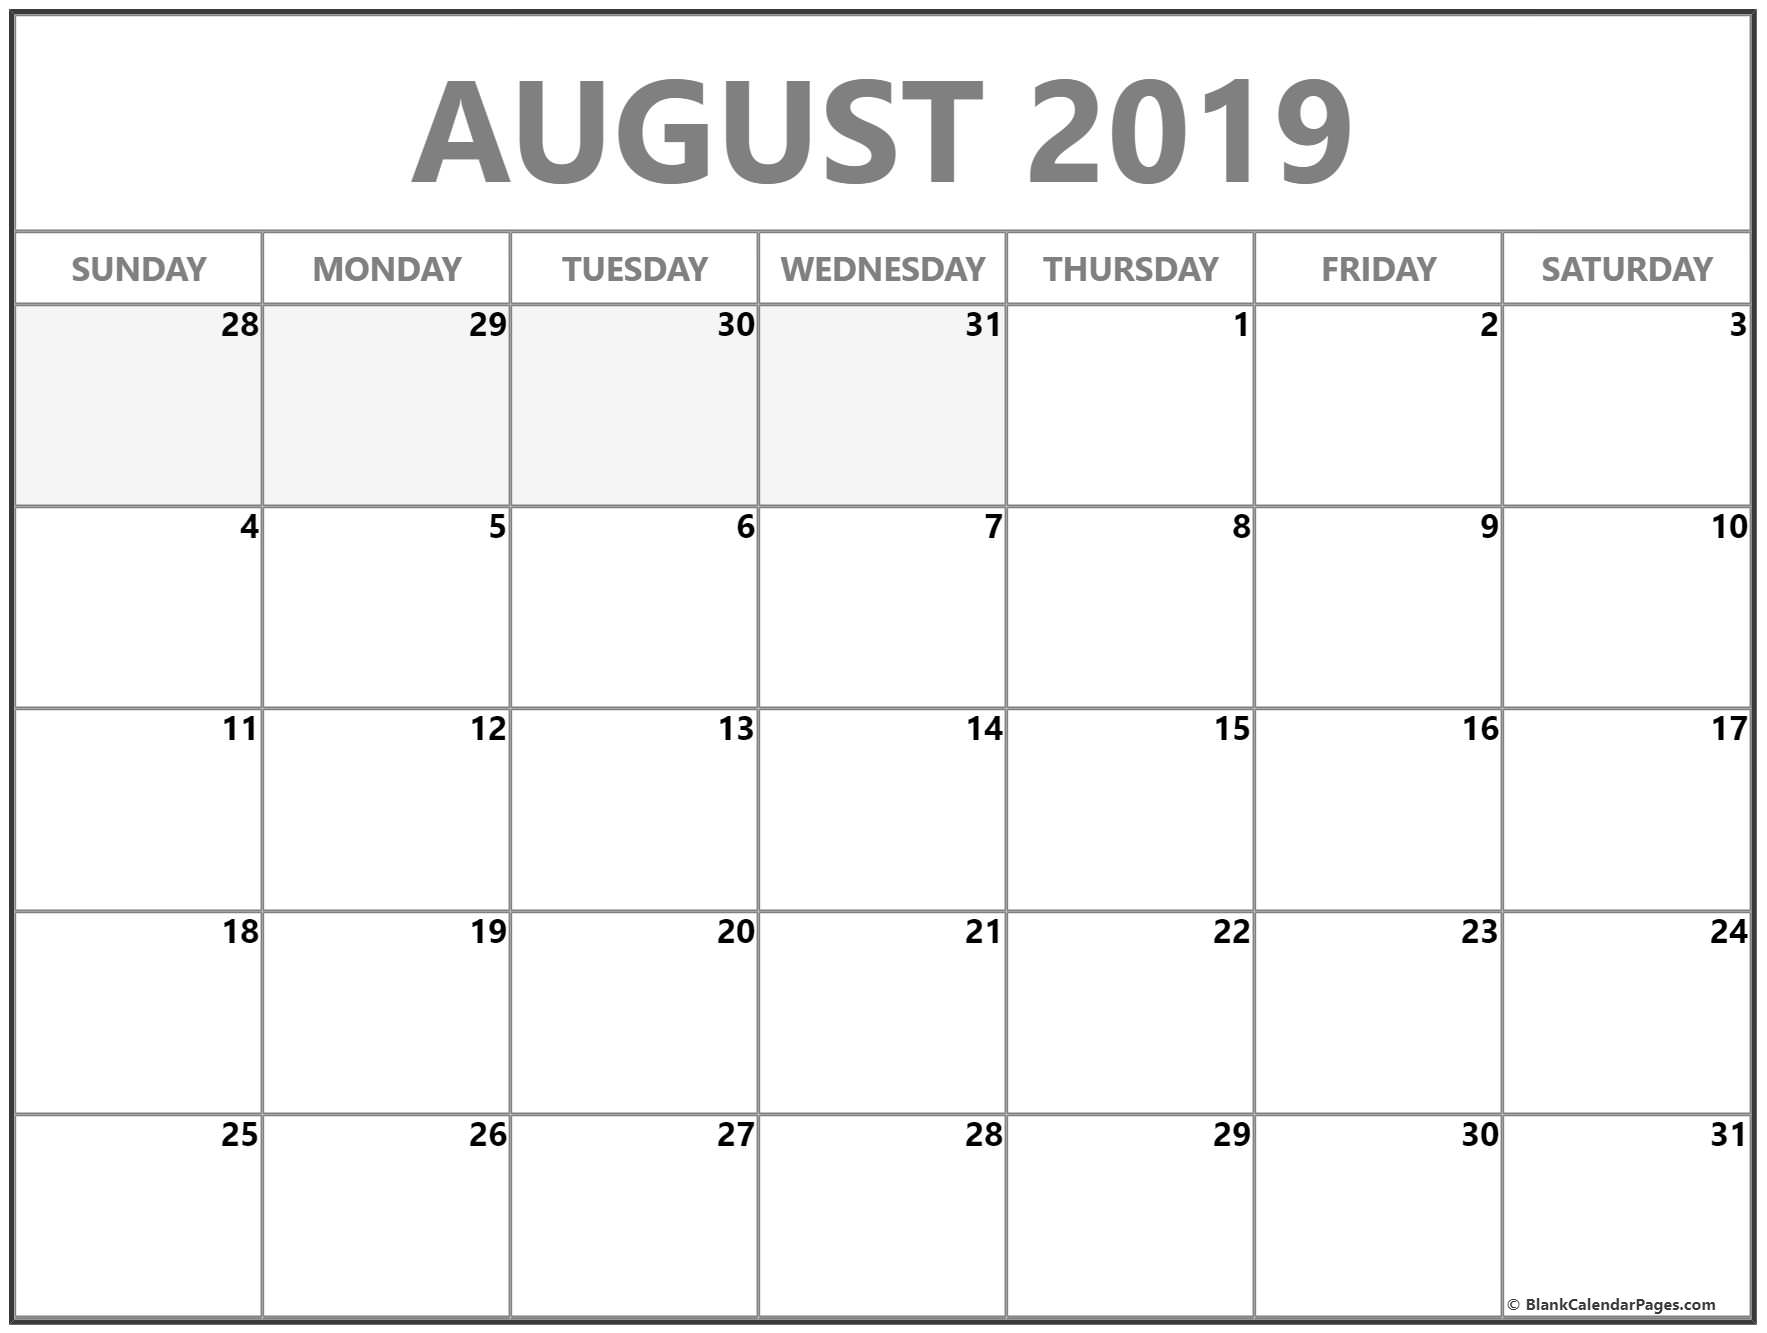 August 2019 Calendar | Free Printable Monthly Calendars for August Blank Calendar Template